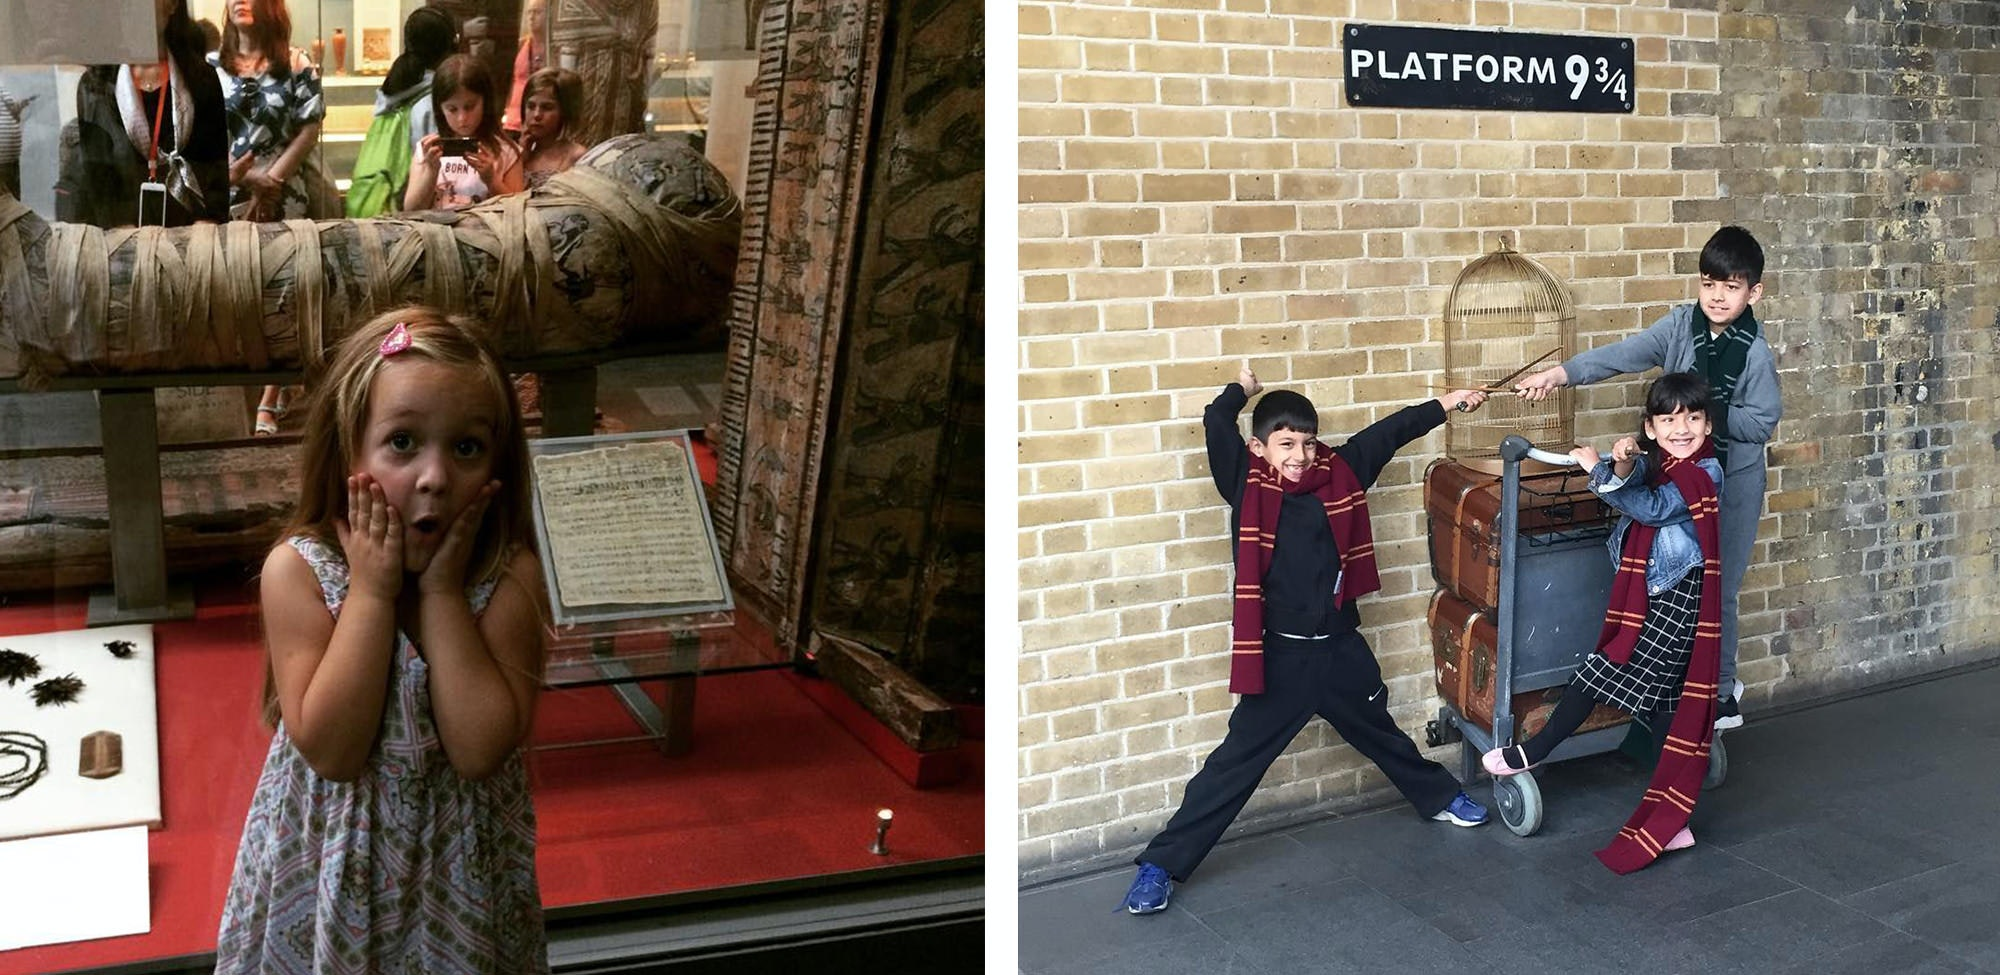 In London with children? Take them to the British Museum or to take that famous photo at the Harry Potter's world famous Platform.